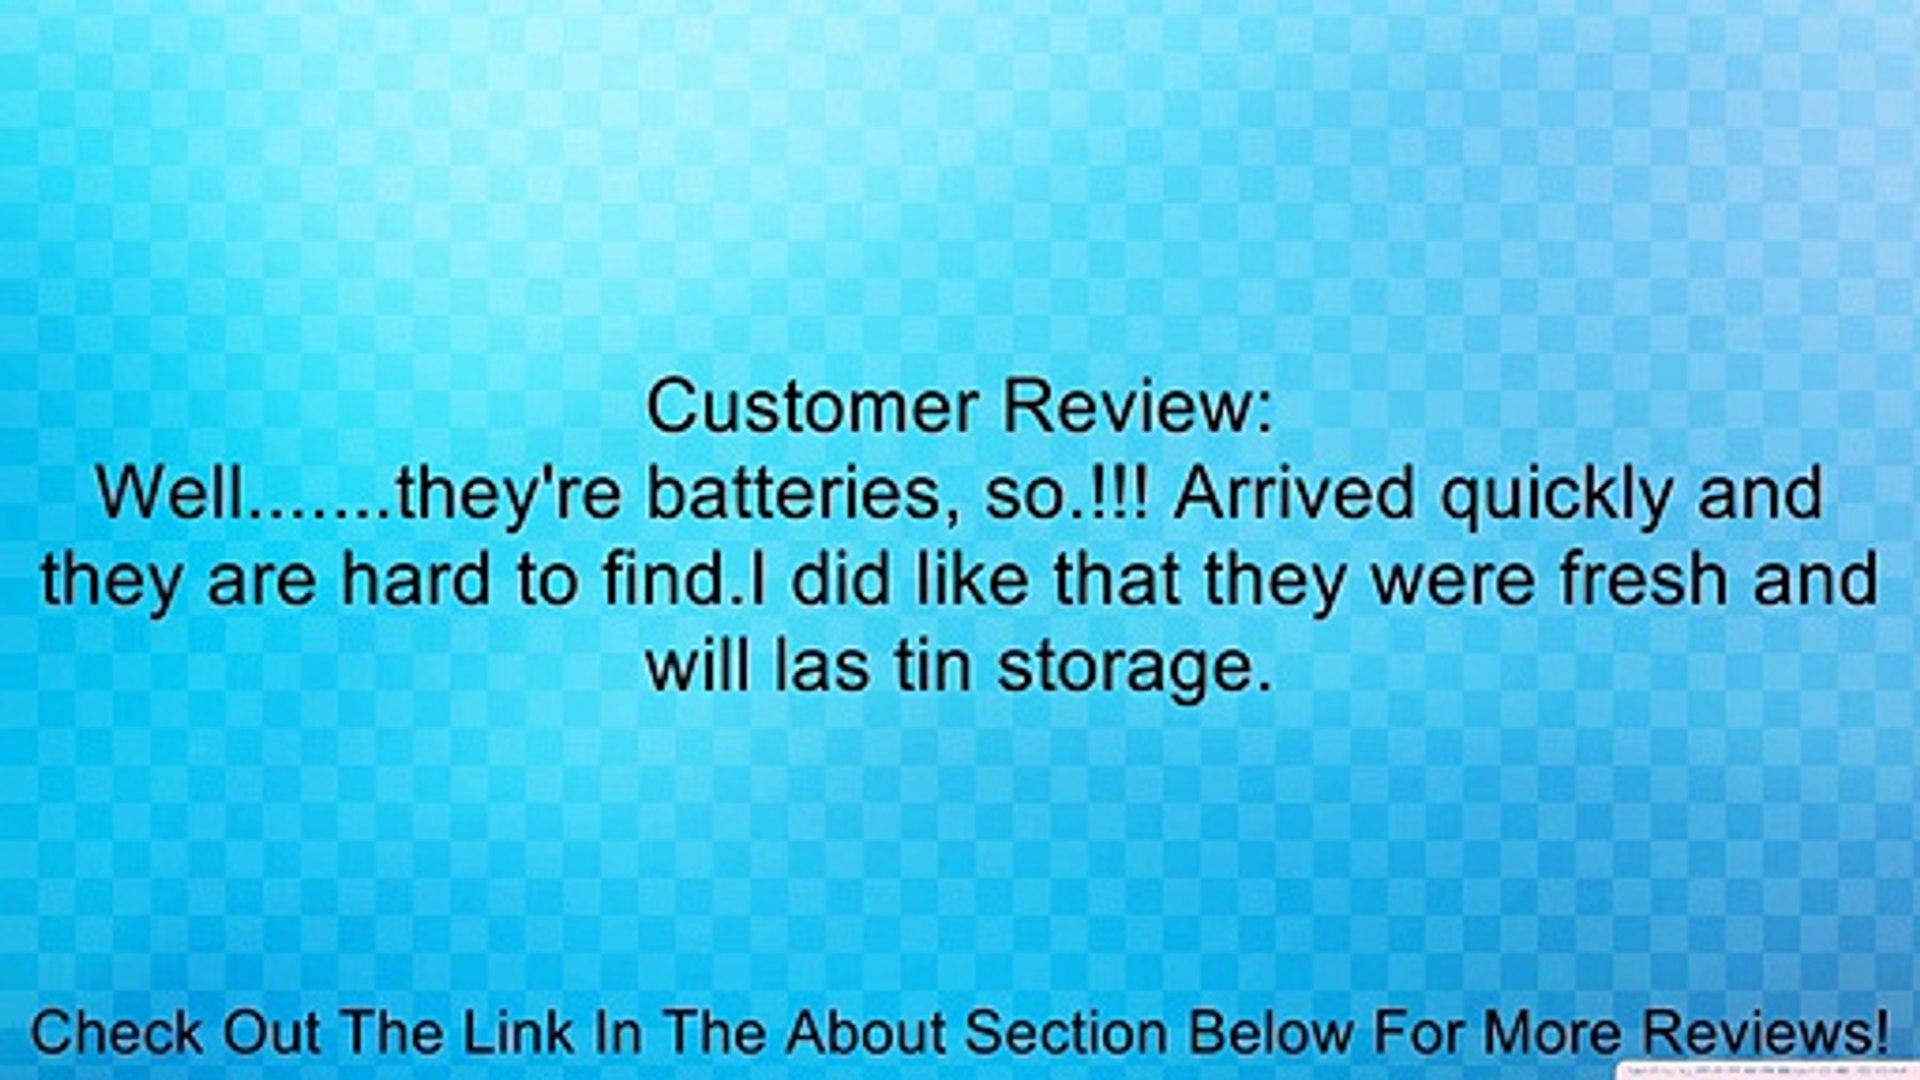 AAAA ENERGIZER E96 Batteries x 12 batteries exp. date 2017 Review